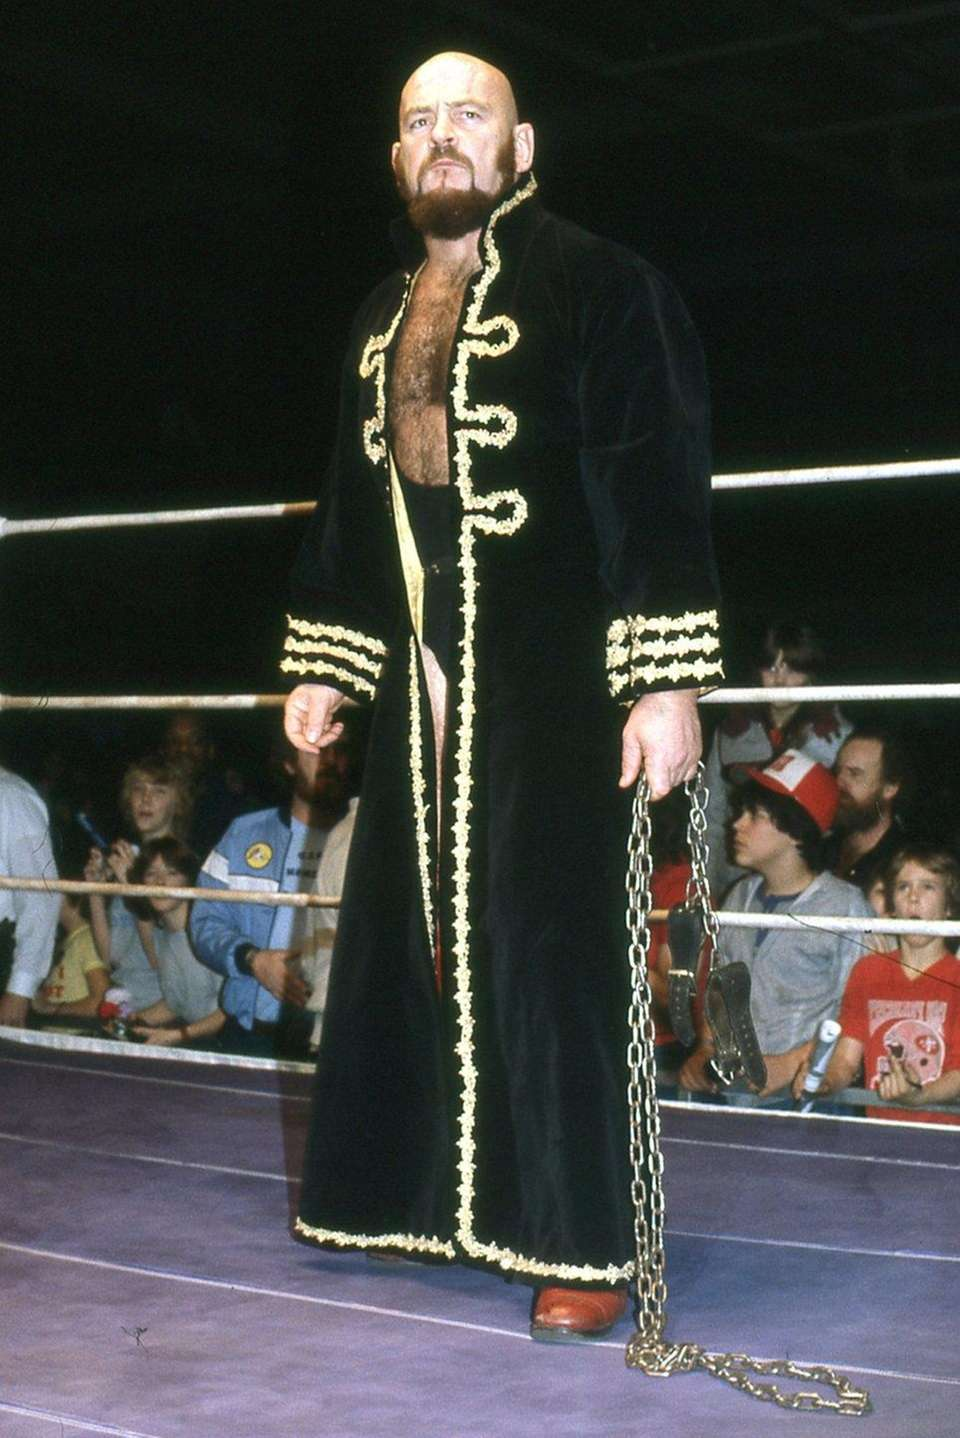 Ivan Koloff, the Canadian professional wrestler known as